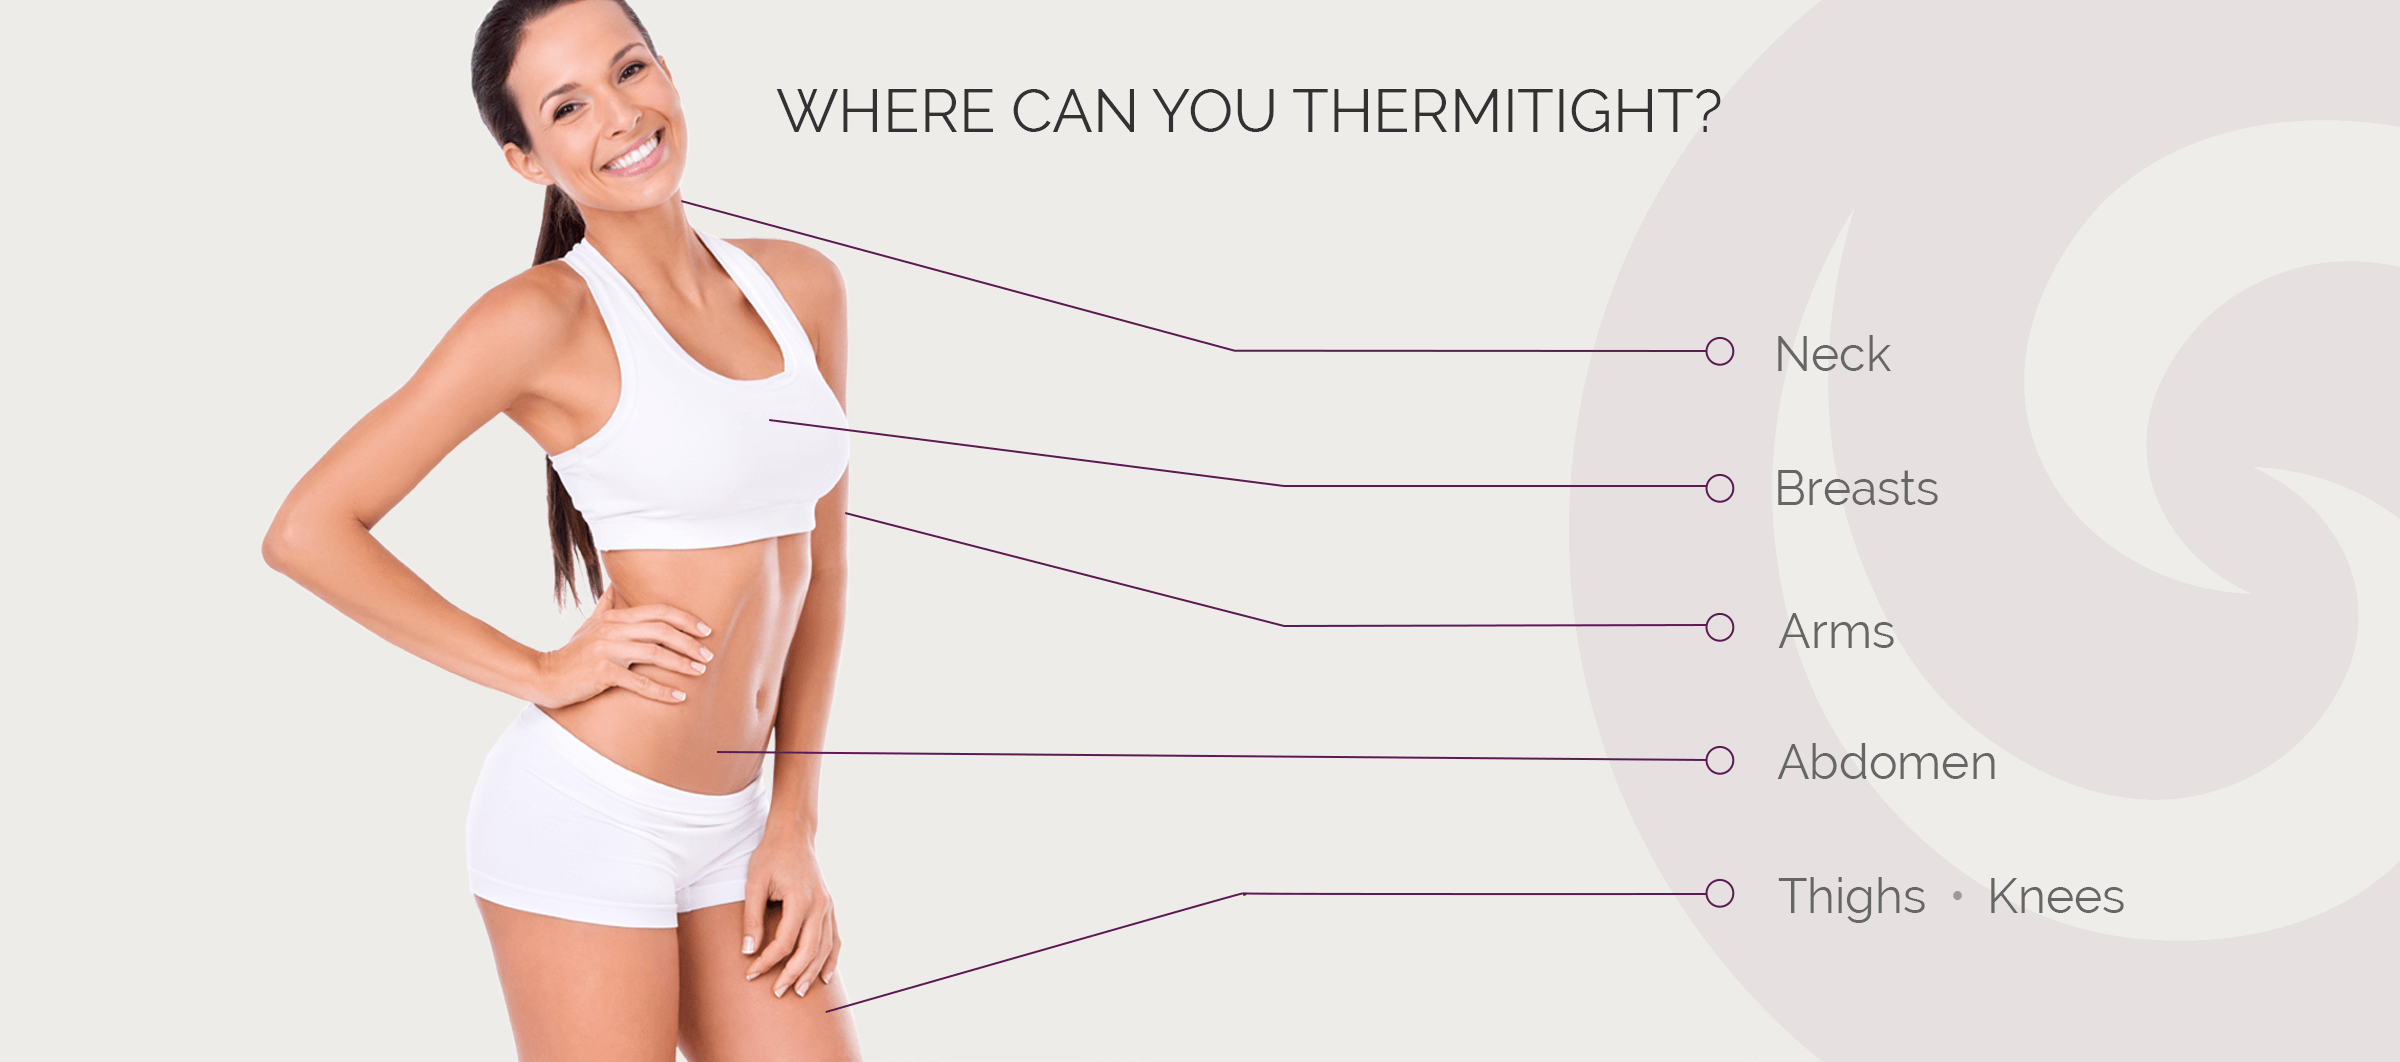 Thermi offers Thermi Tight for skin tightening